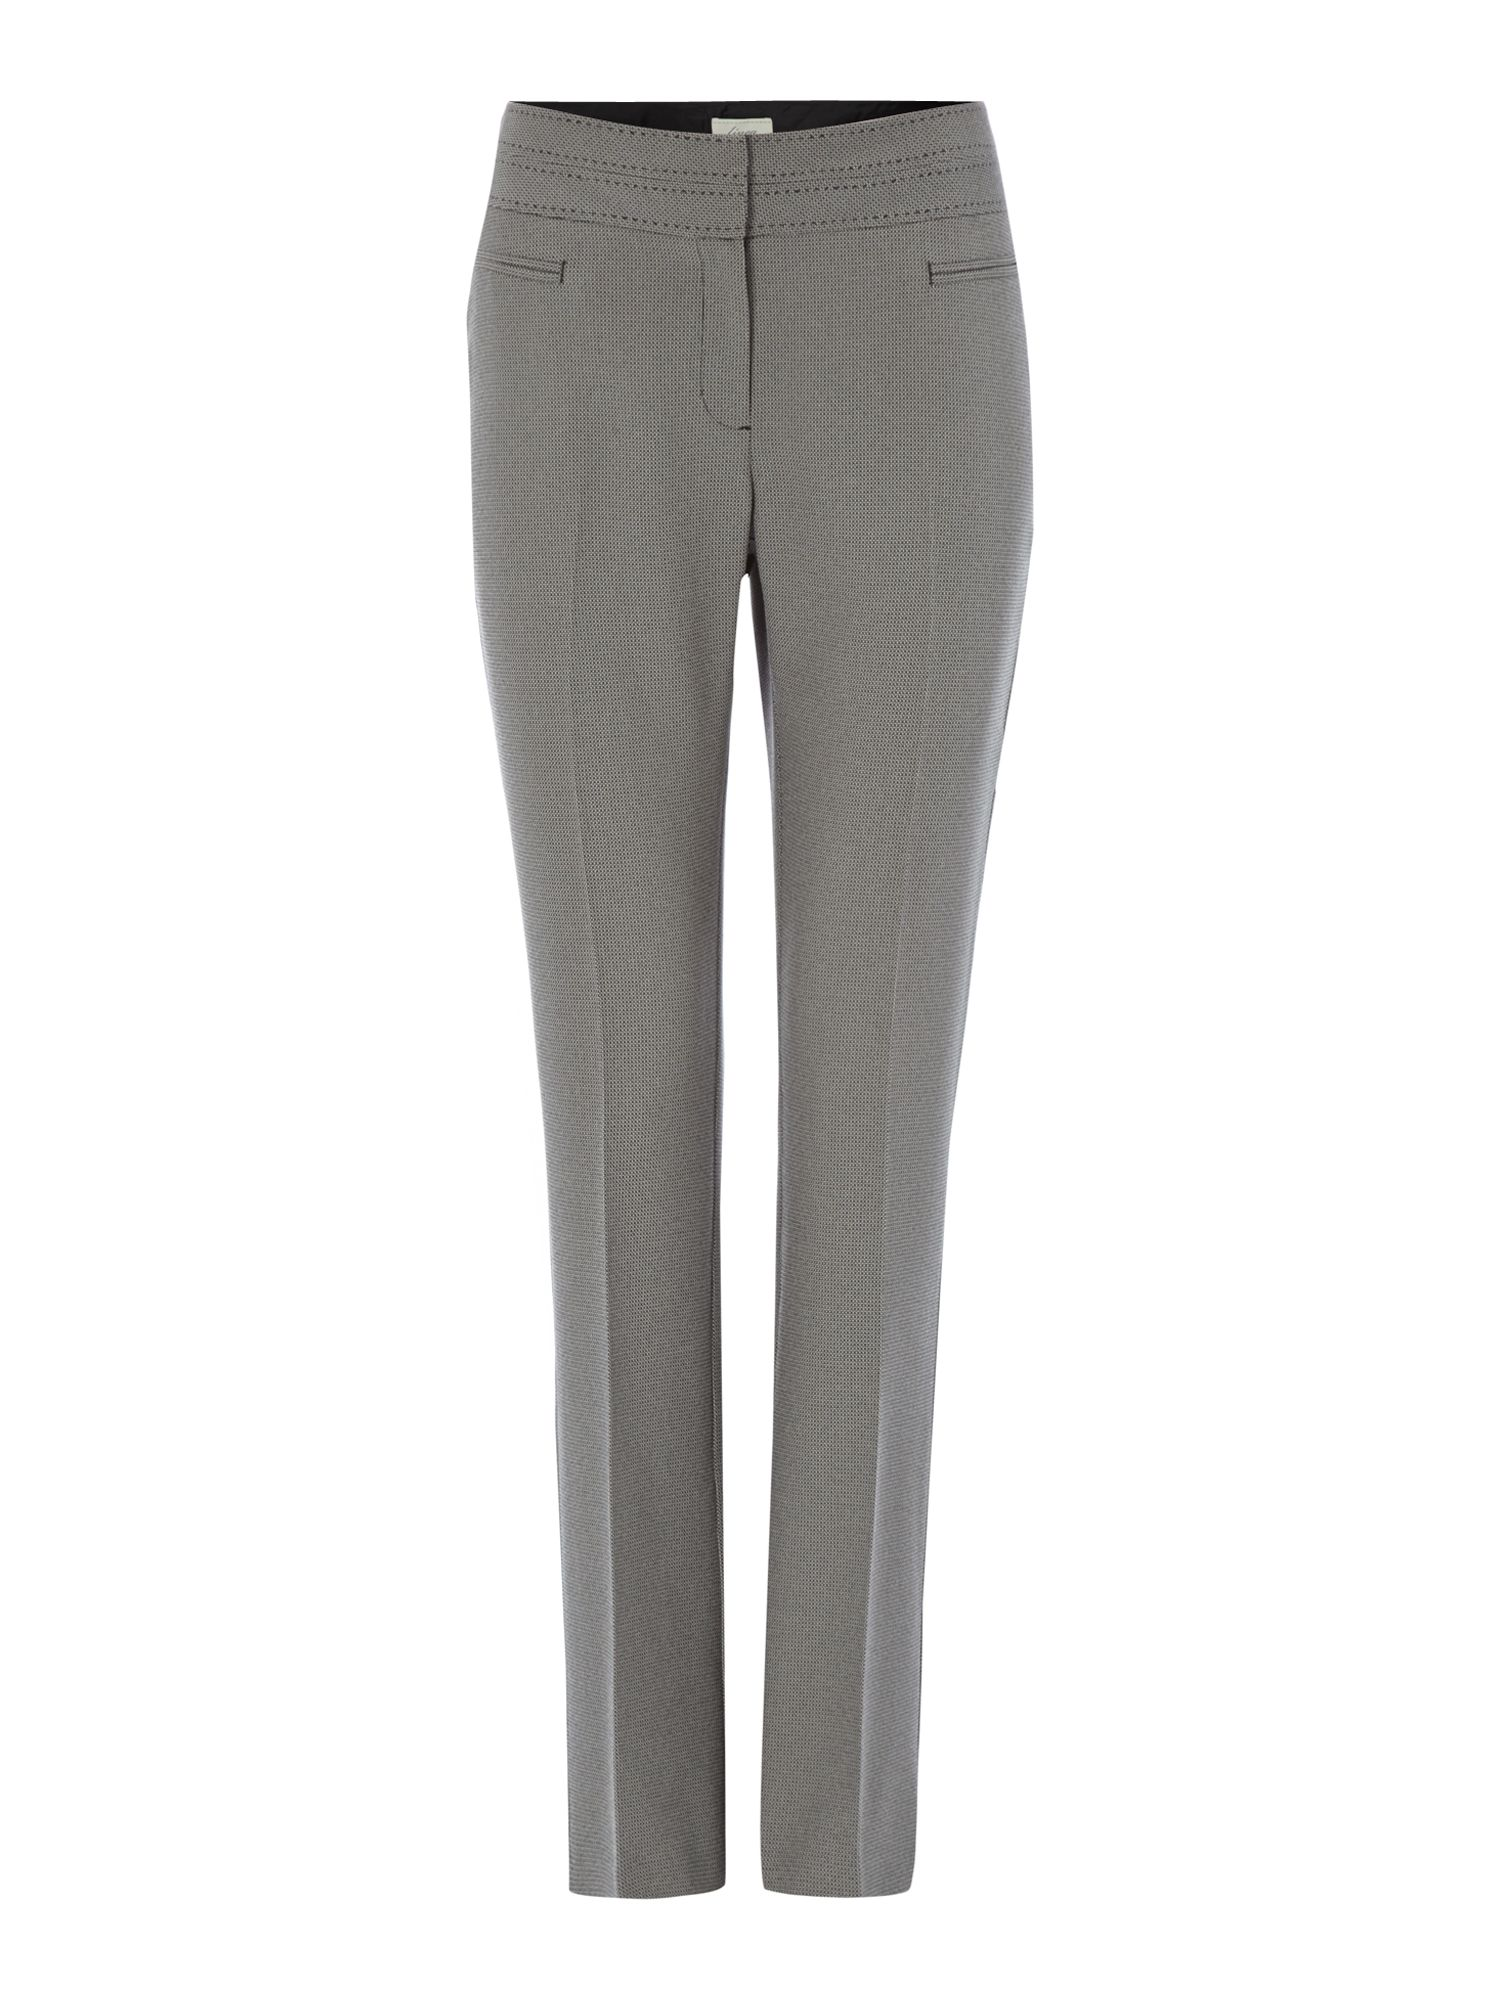 Lottie spot tailored trouser- 32